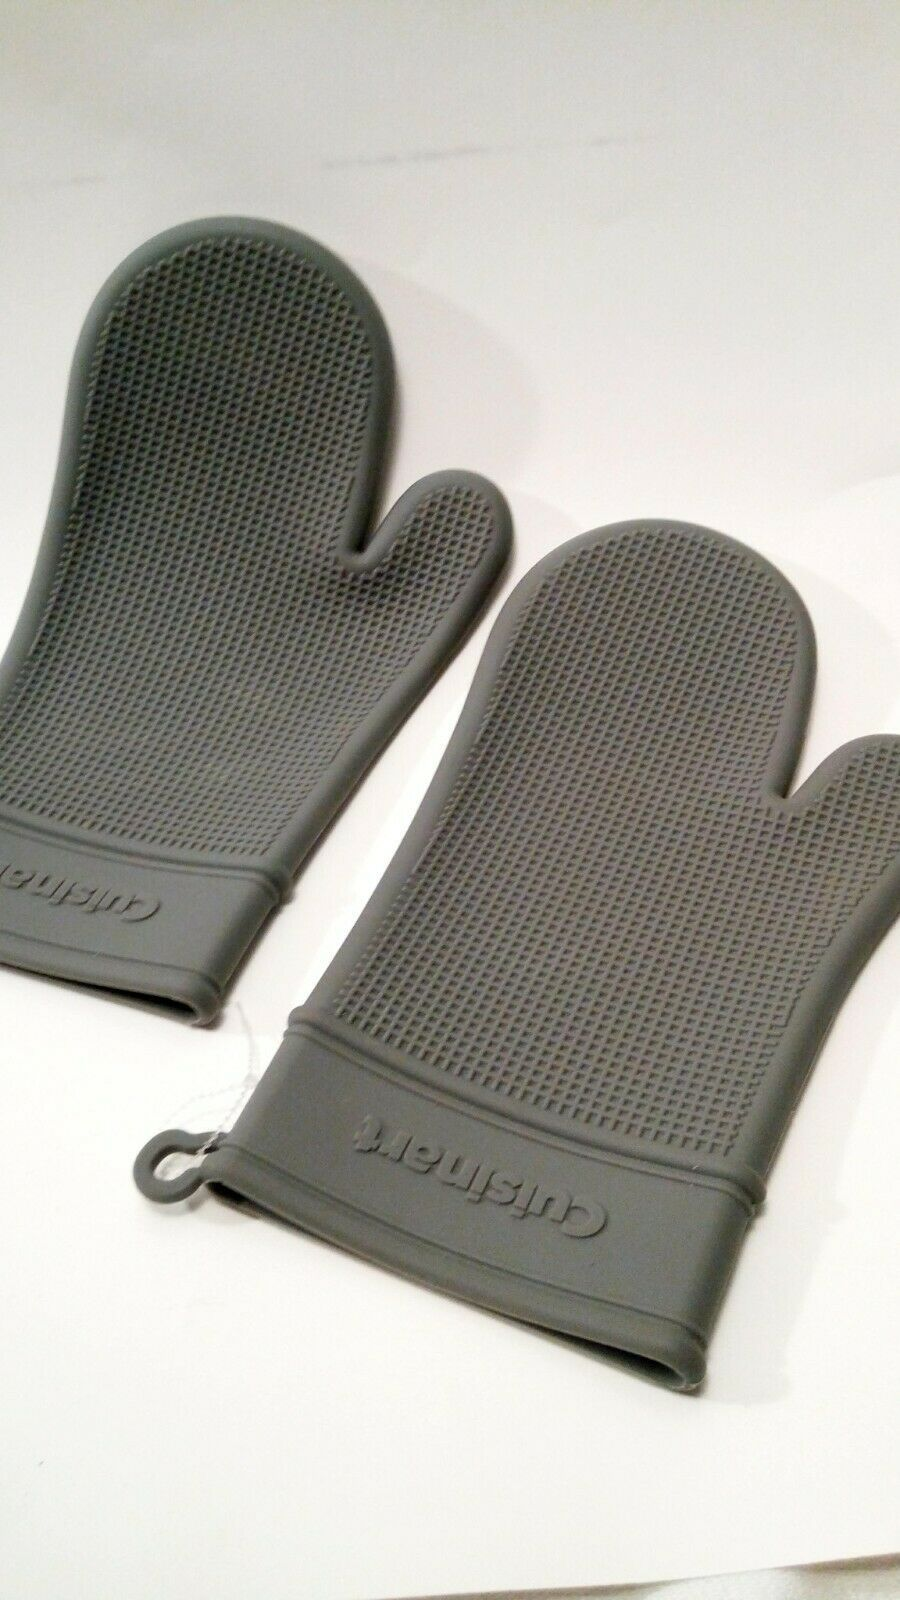 Cuisinart 2 Pack Grey Silicone Oven Mitts Grilling Potholders Ebay Silicone Oven Mitt Oven Mitts Pot Holders